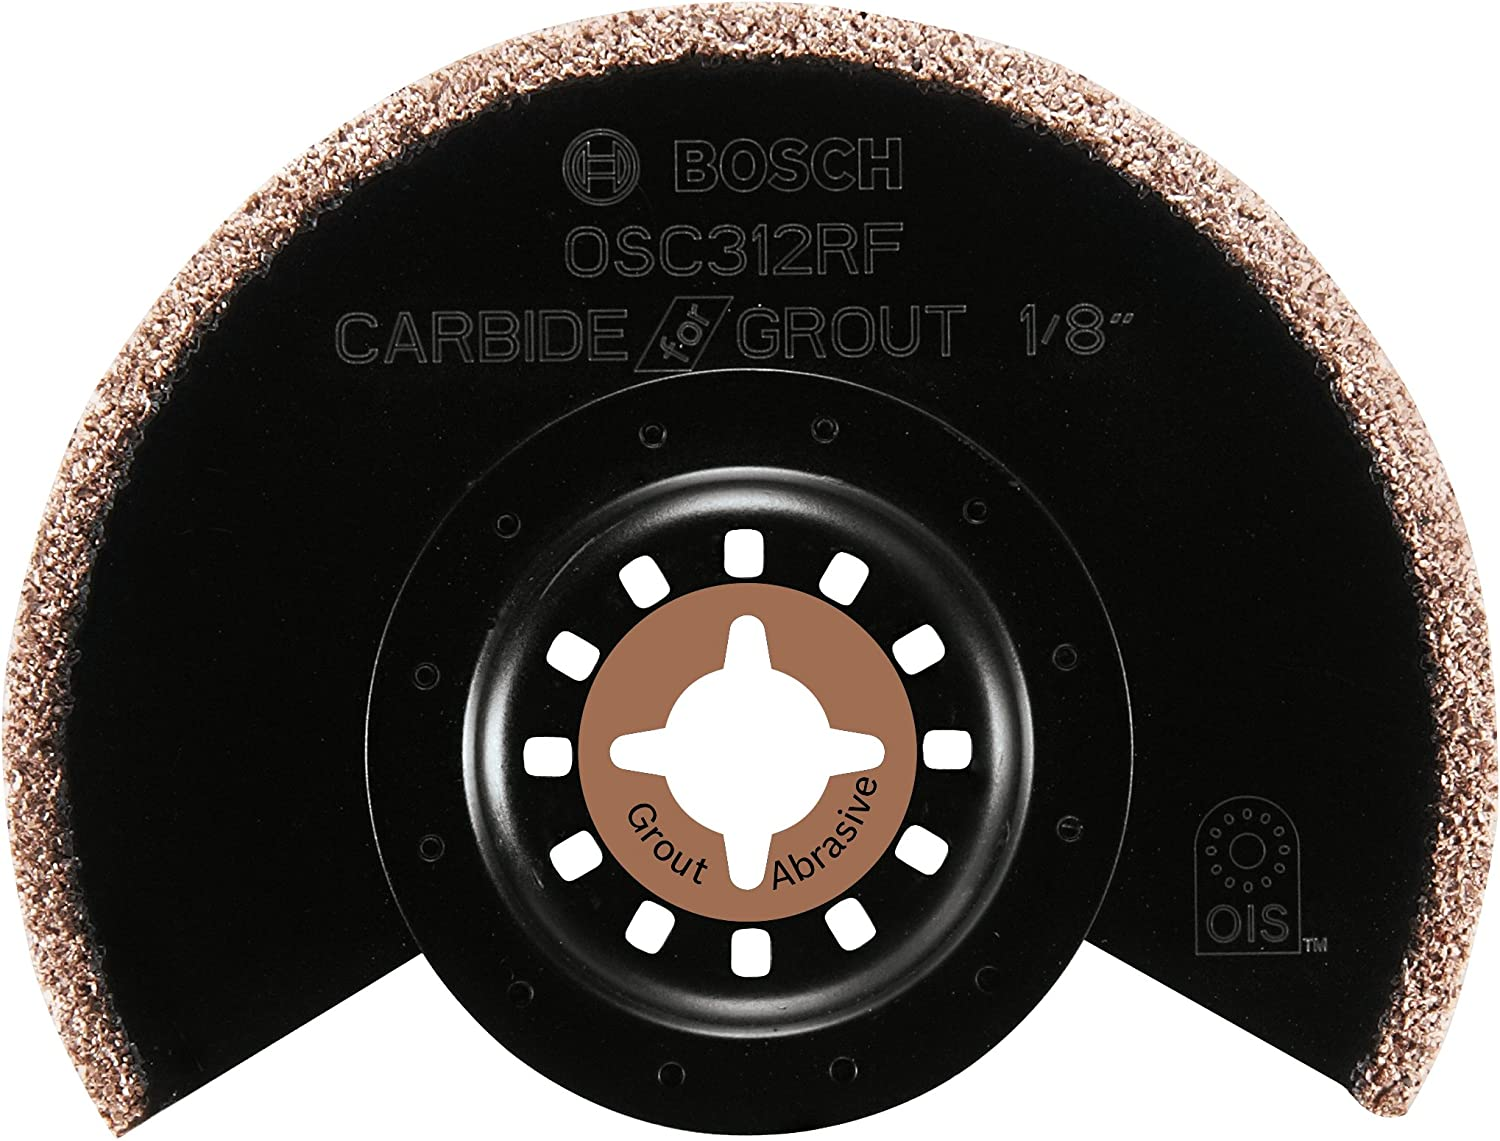 Bosch OSC312RF 3-1/2 In. x 1/8 In. Kerf Multi-Tool Carbide/Grit Grout Grinding Blade